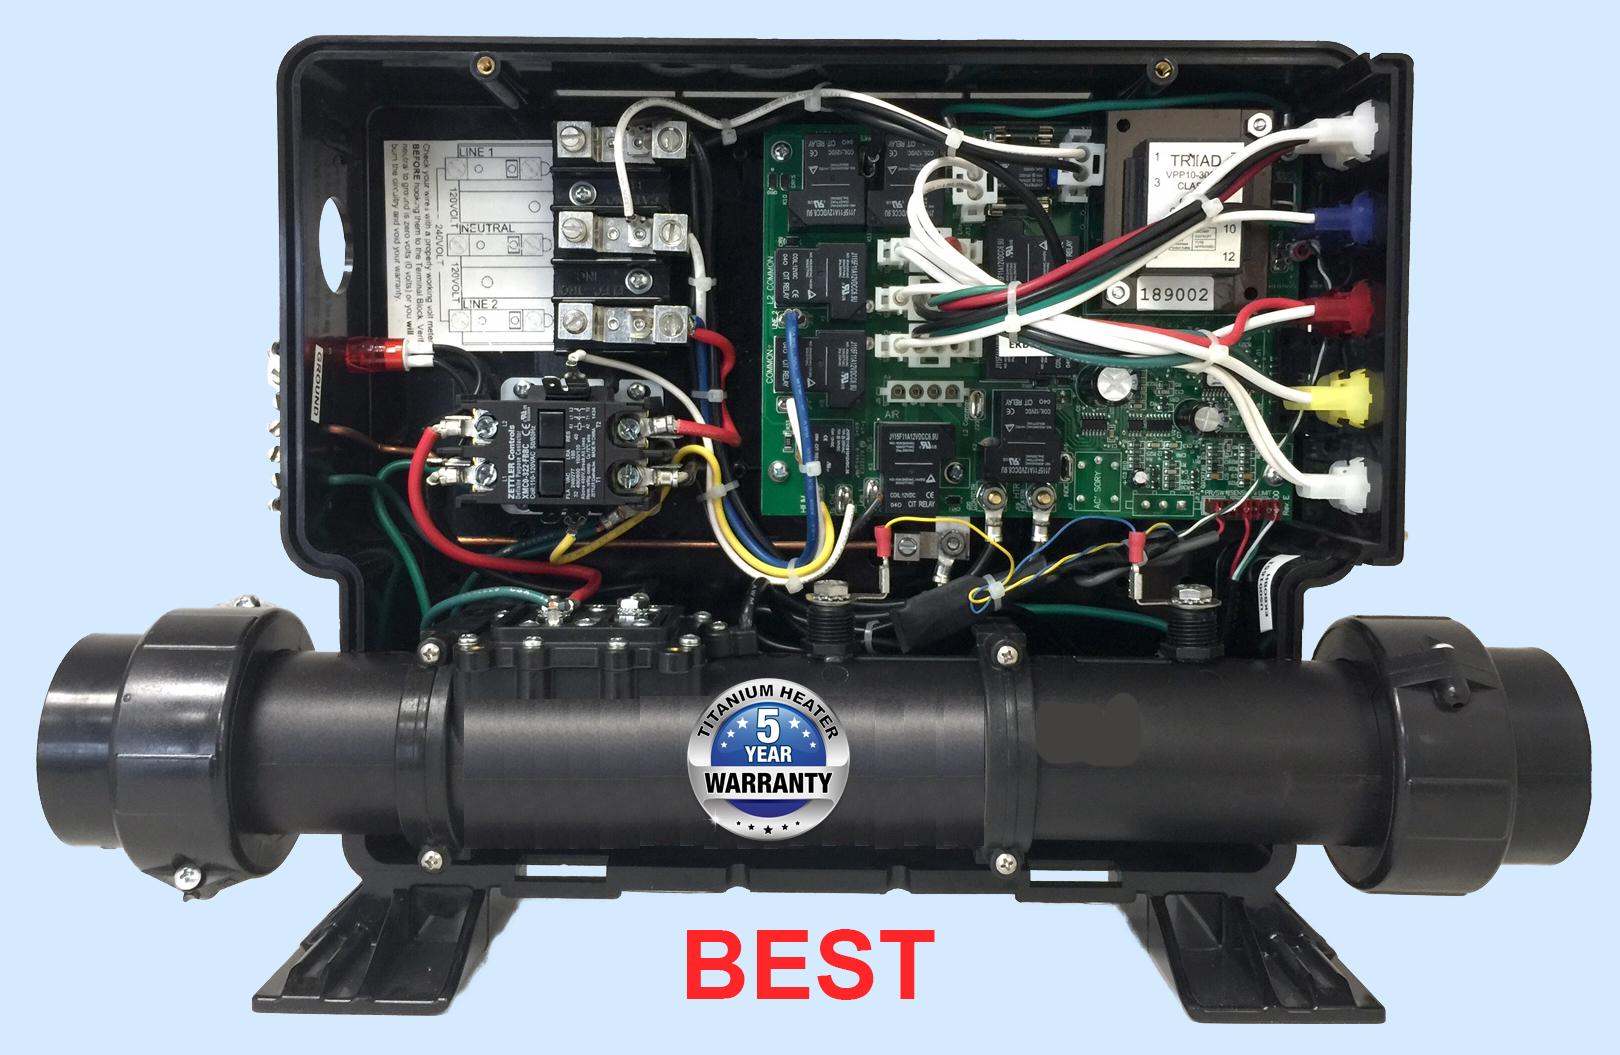 Gecko Hot Tub Wiring Diagram - Electrical Work Wiring Diagram •